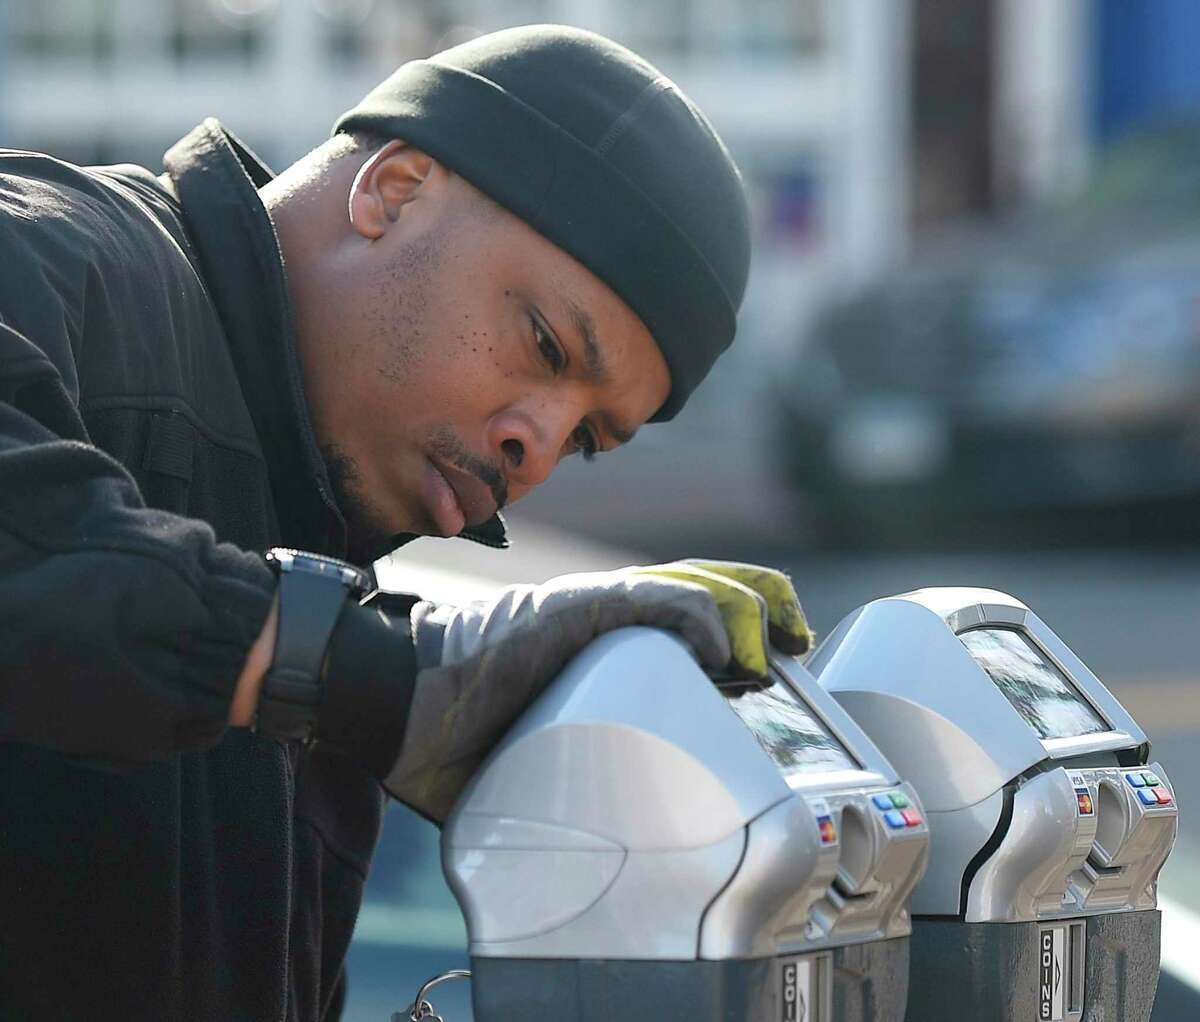 A technician works on a credit-card-enabled parking meter in 2019 in Stamford, Conn. Some retailers continue to warn customers they are short on coins in their tills to make change, asking them to use payment cards if possible.